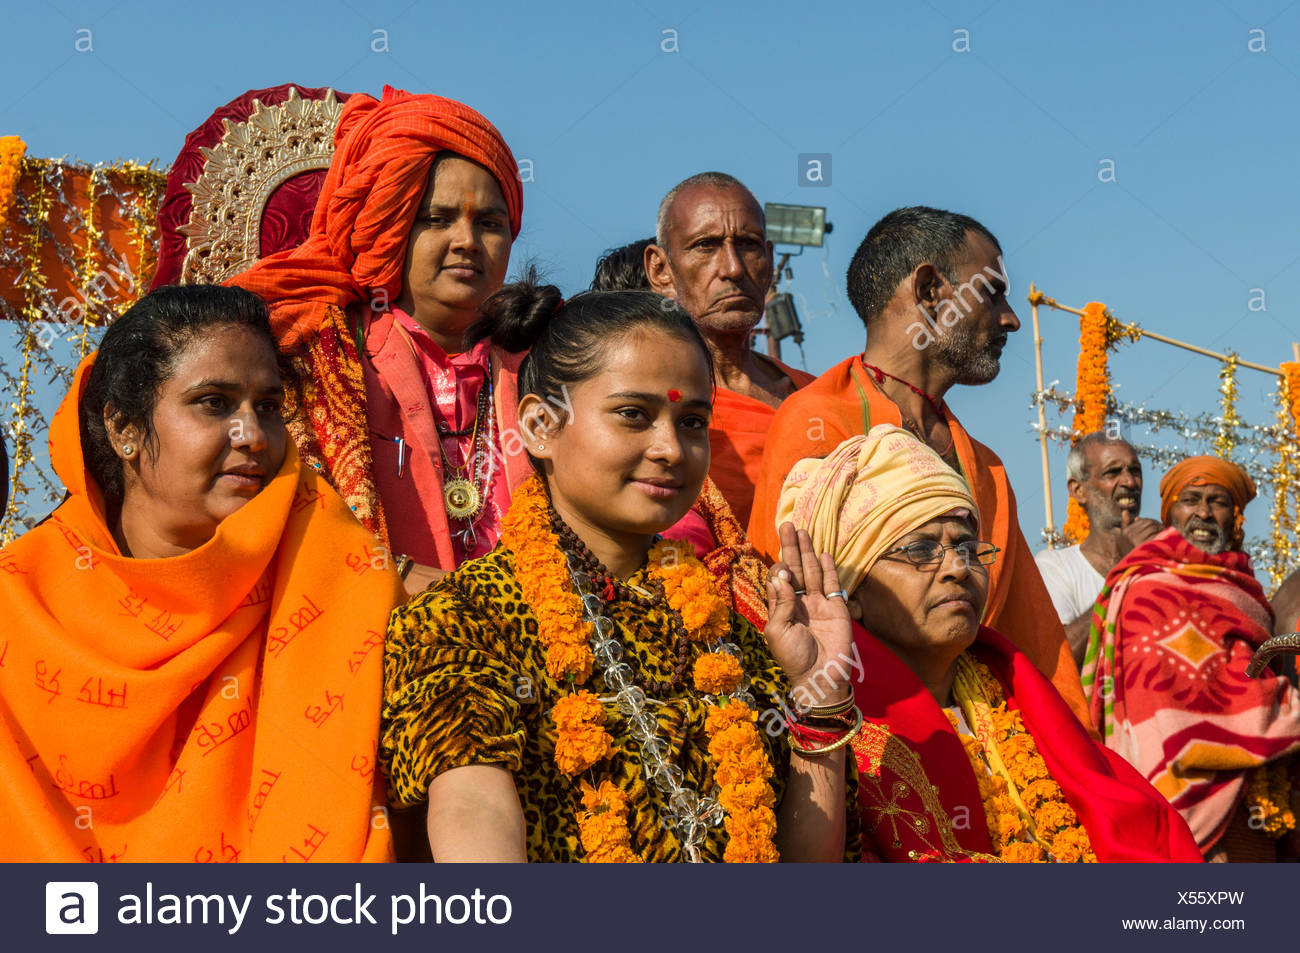 Group of sadhus, holy men, and sadhvis, holy women, participating in the procession of Shahi Snan, the royal bath - Stock Image